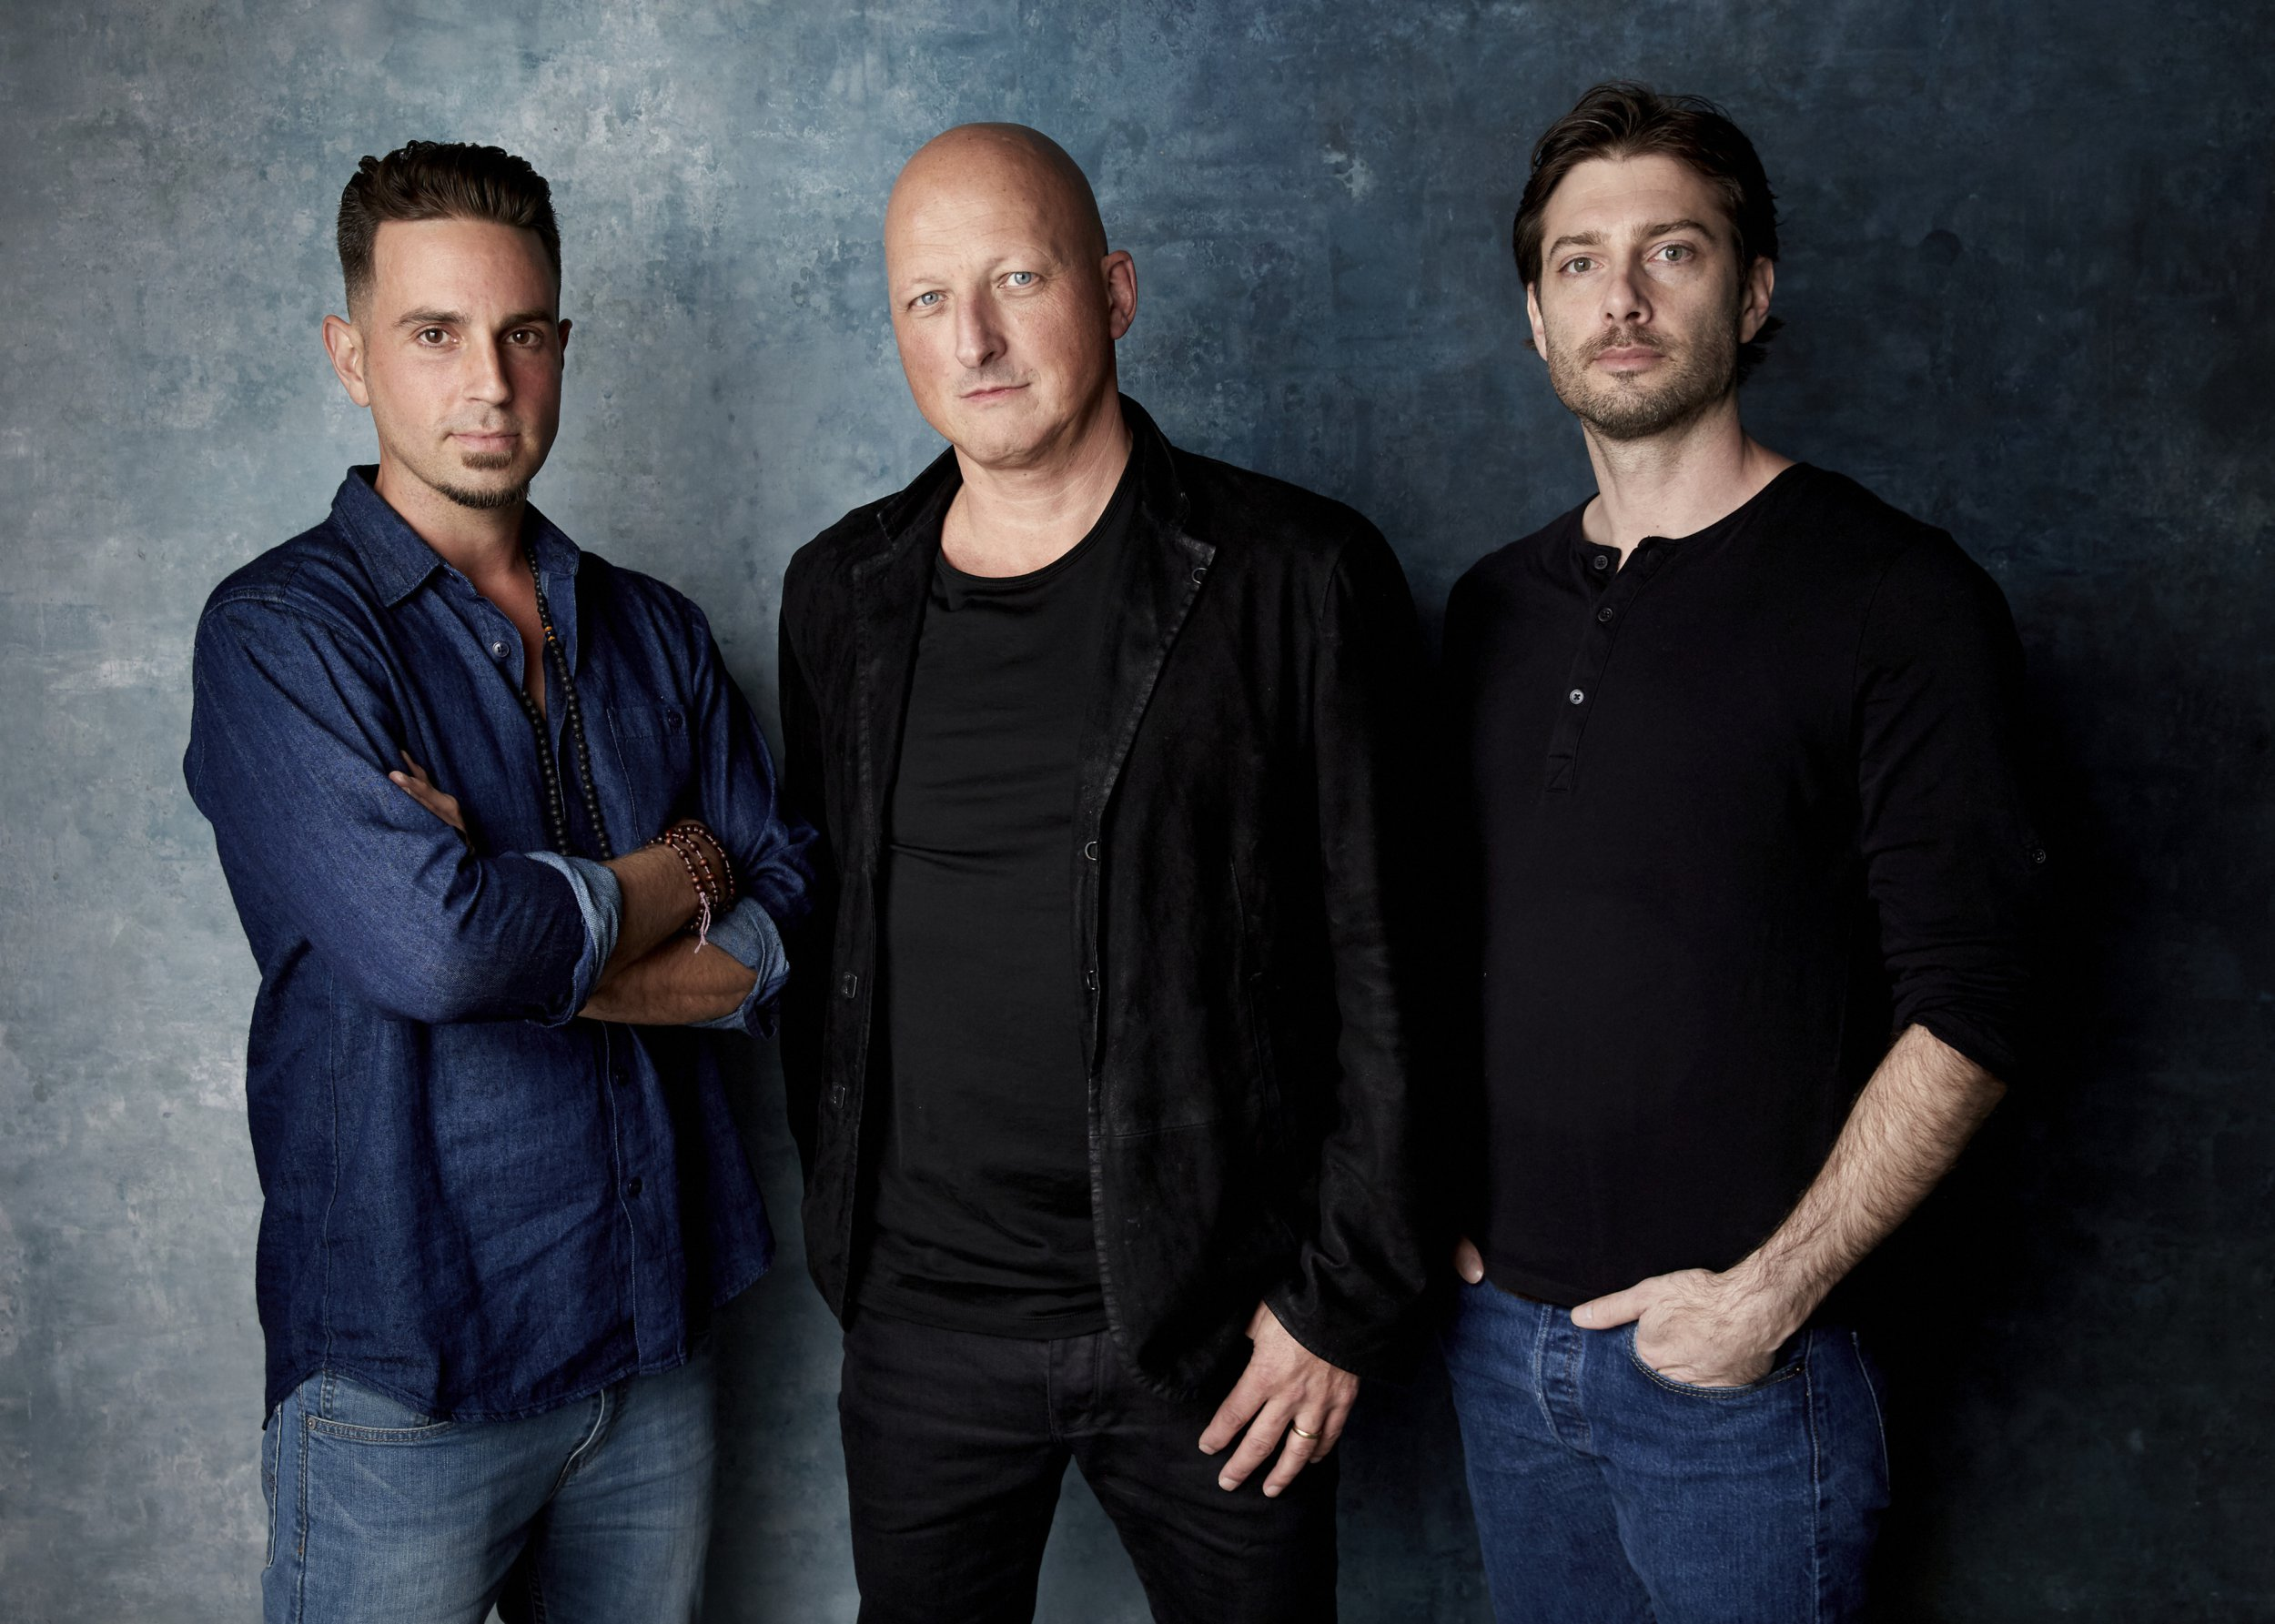 """FILE - In this Jan. 24, 2019, file photo, Wade Robson, from left, director Dan Reed and James Safechuck pose for a portrait to promote the film """"Leaving Neverland"""" at the Salesforce Music Lodge during the Sundance Film Festival in Park City, Utah. The Michael Jackson estate has sent a letter to the U.K.???s Channel 4 warning that the documentary on Robson and Safechuck, who accuse the singer of molesting them as boys violates the network's programming guidelines. Estate attorneys say in the letter released to The Associated Press on Monday, Feb. 11, that """"Leaving Neverland,"""" includes no response from Jackson defenders as the channel's guidelines require. (Photo by Taylor Jewell/Invision/AP, File)"""